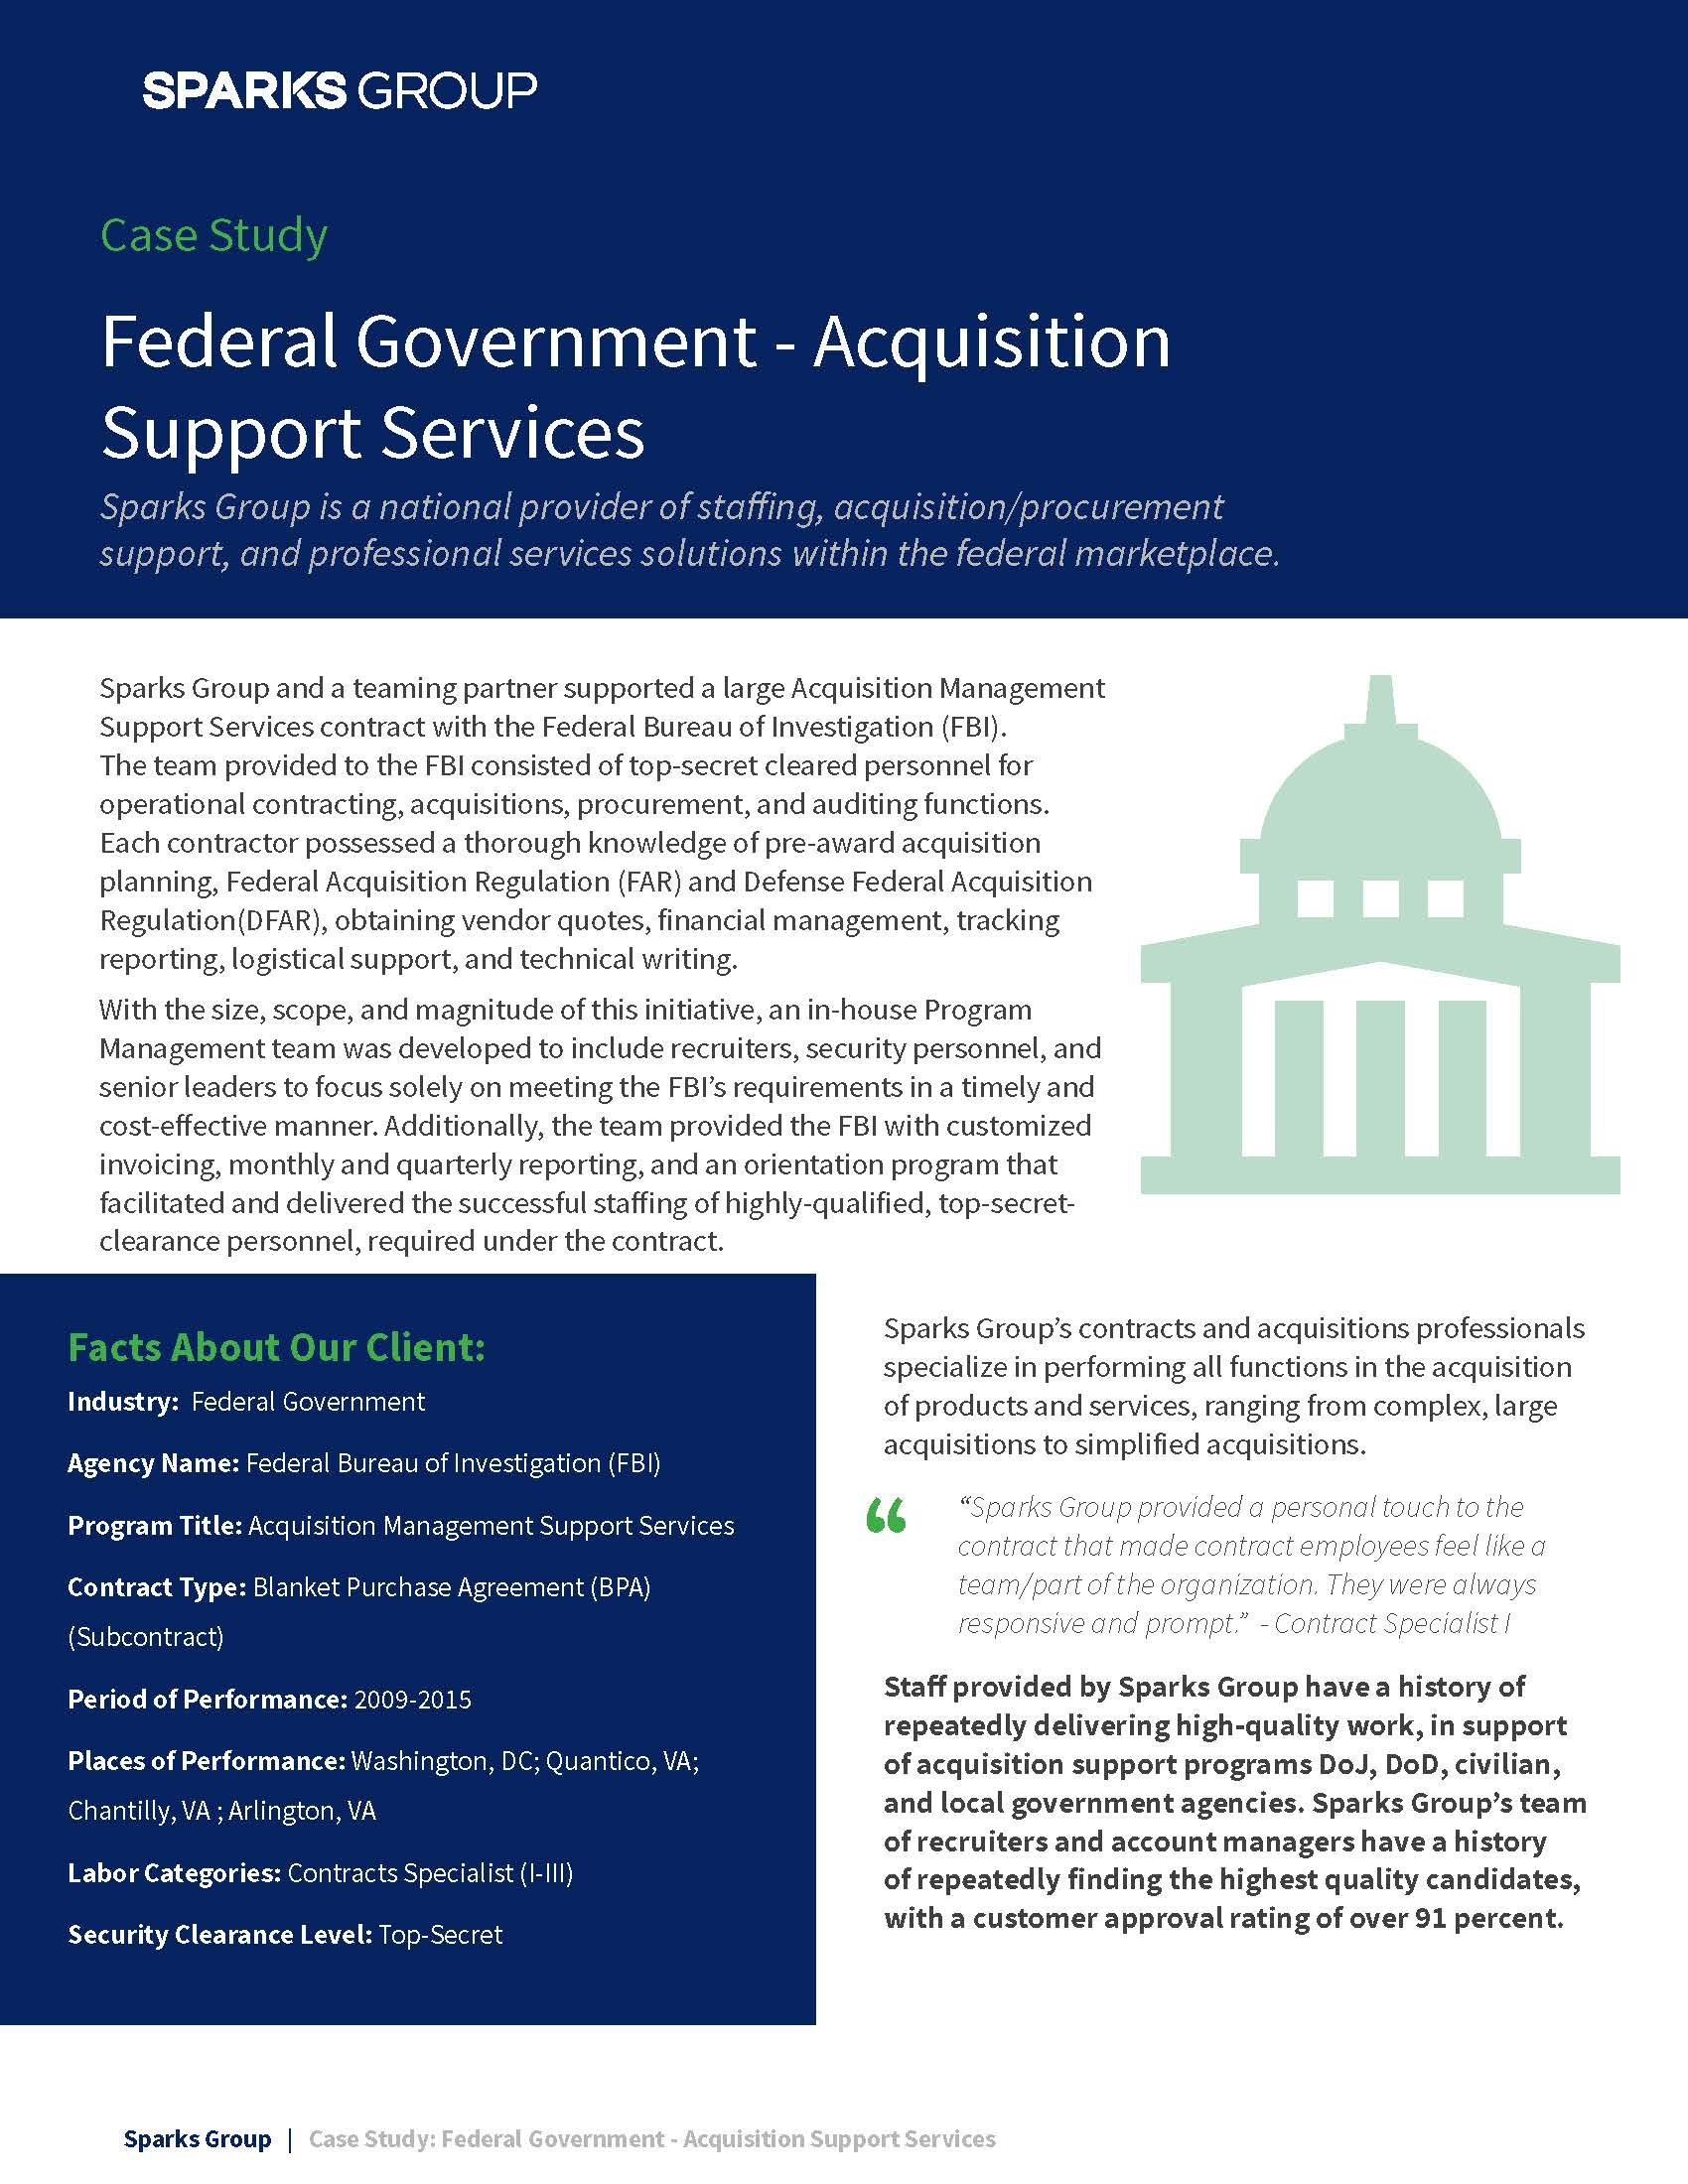 Case Study - Federal Government Acquisition Support Services